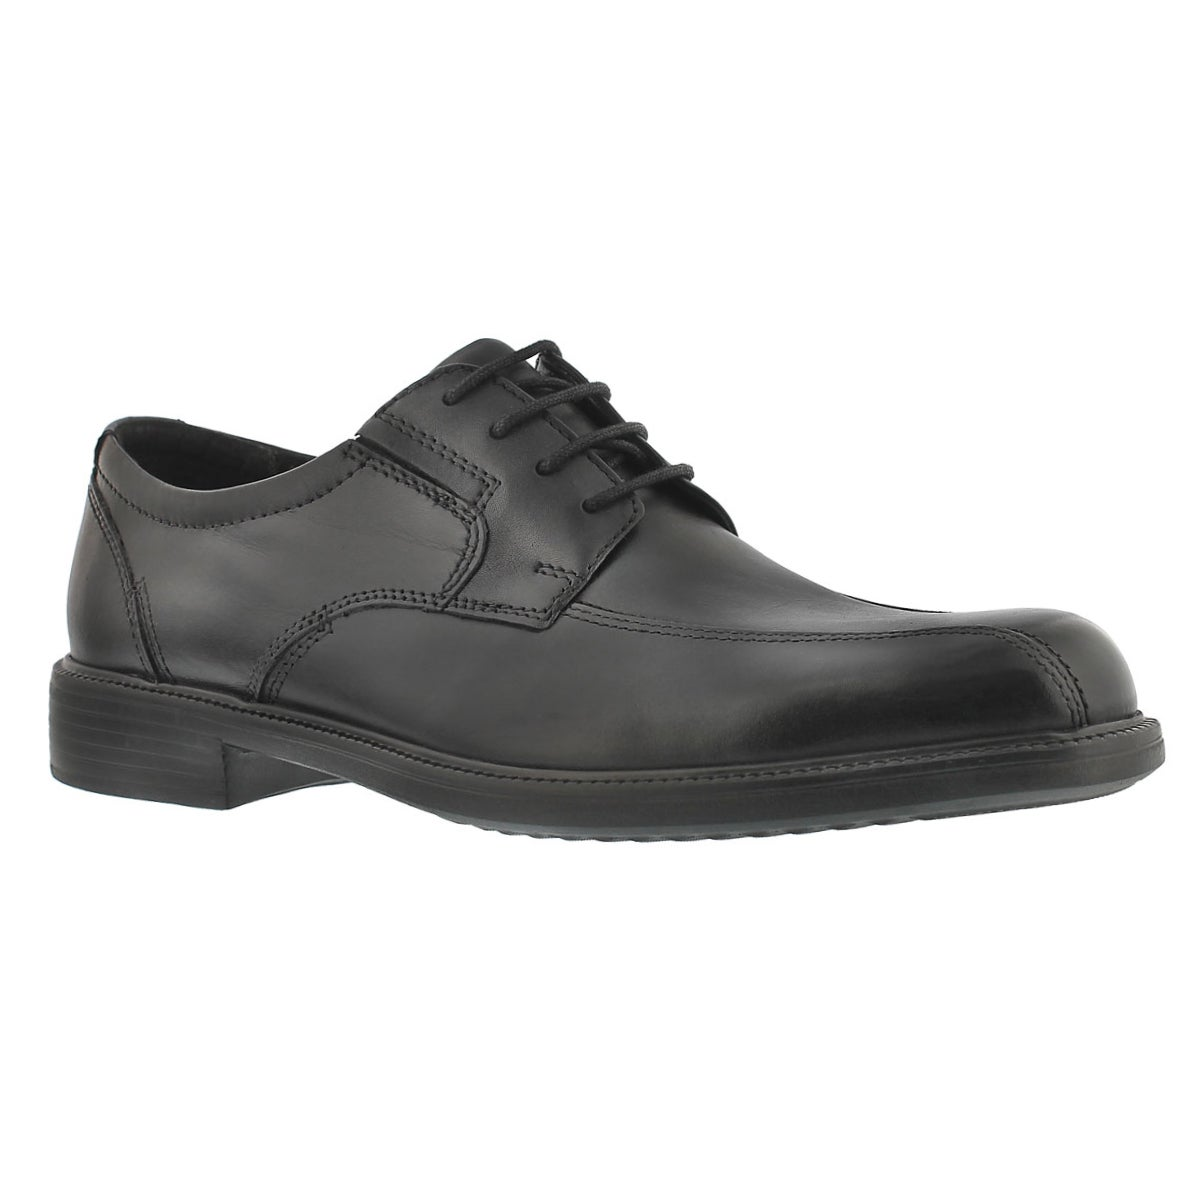 Mns Bardwell Walk blk lace up dress shoe